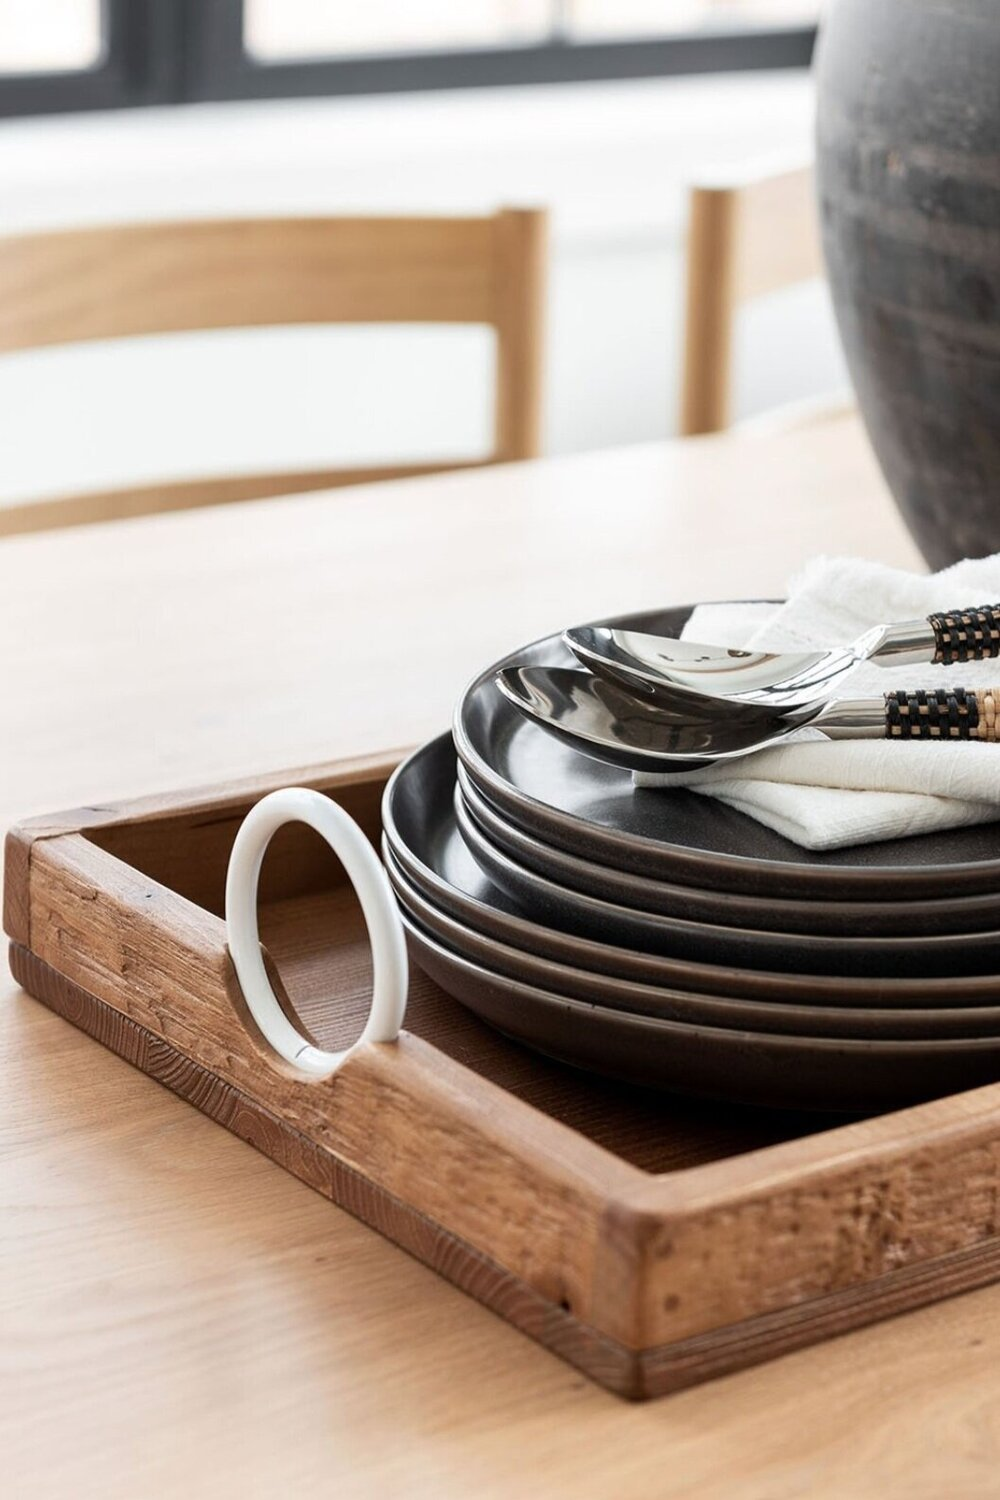 5 Kitchen Essentials To Stock Up On Before The Holidays